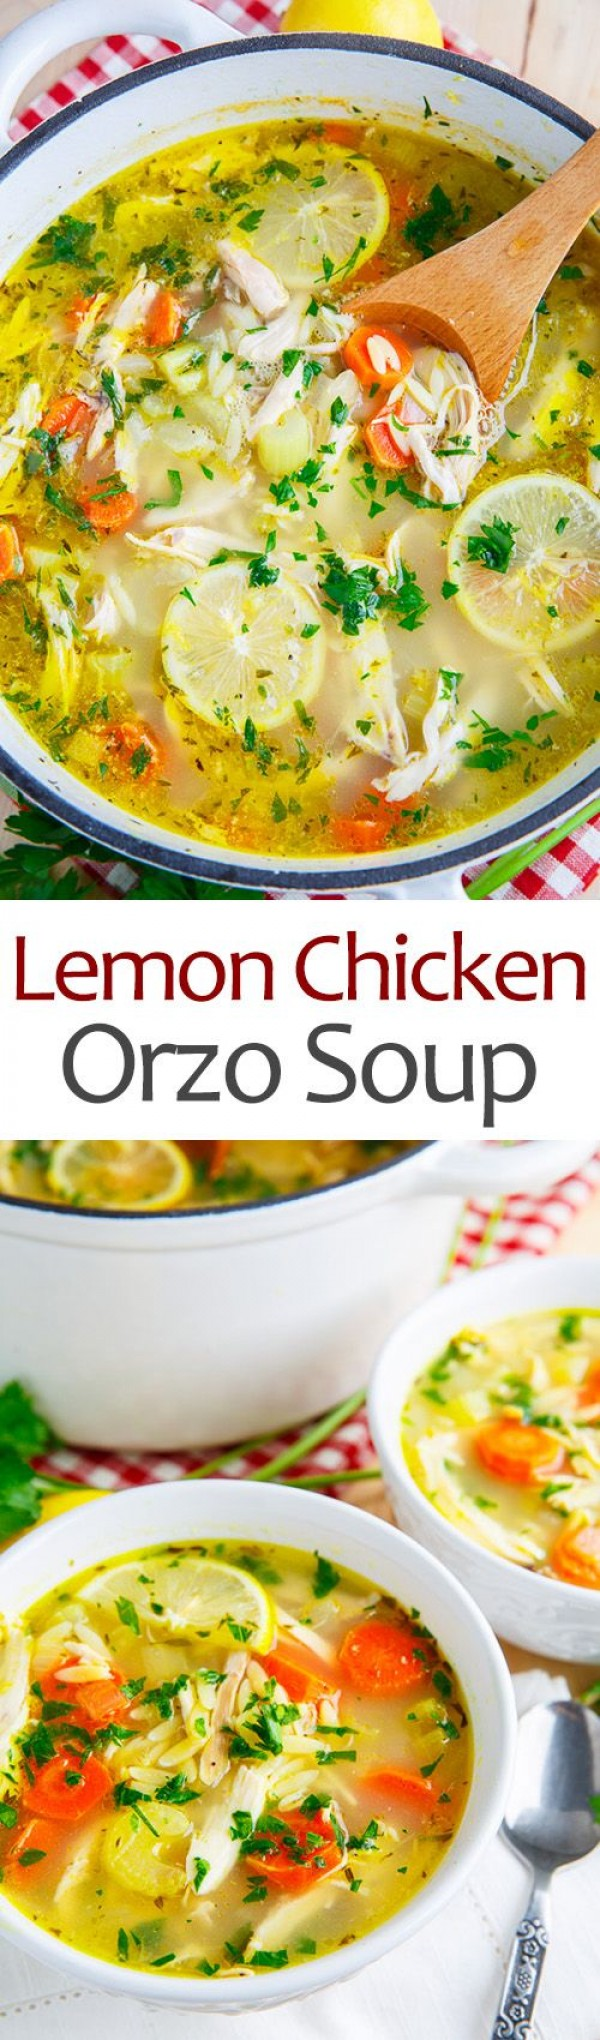 Get the recipe Lemon Chicken Orzo Soup @recipes_to_go